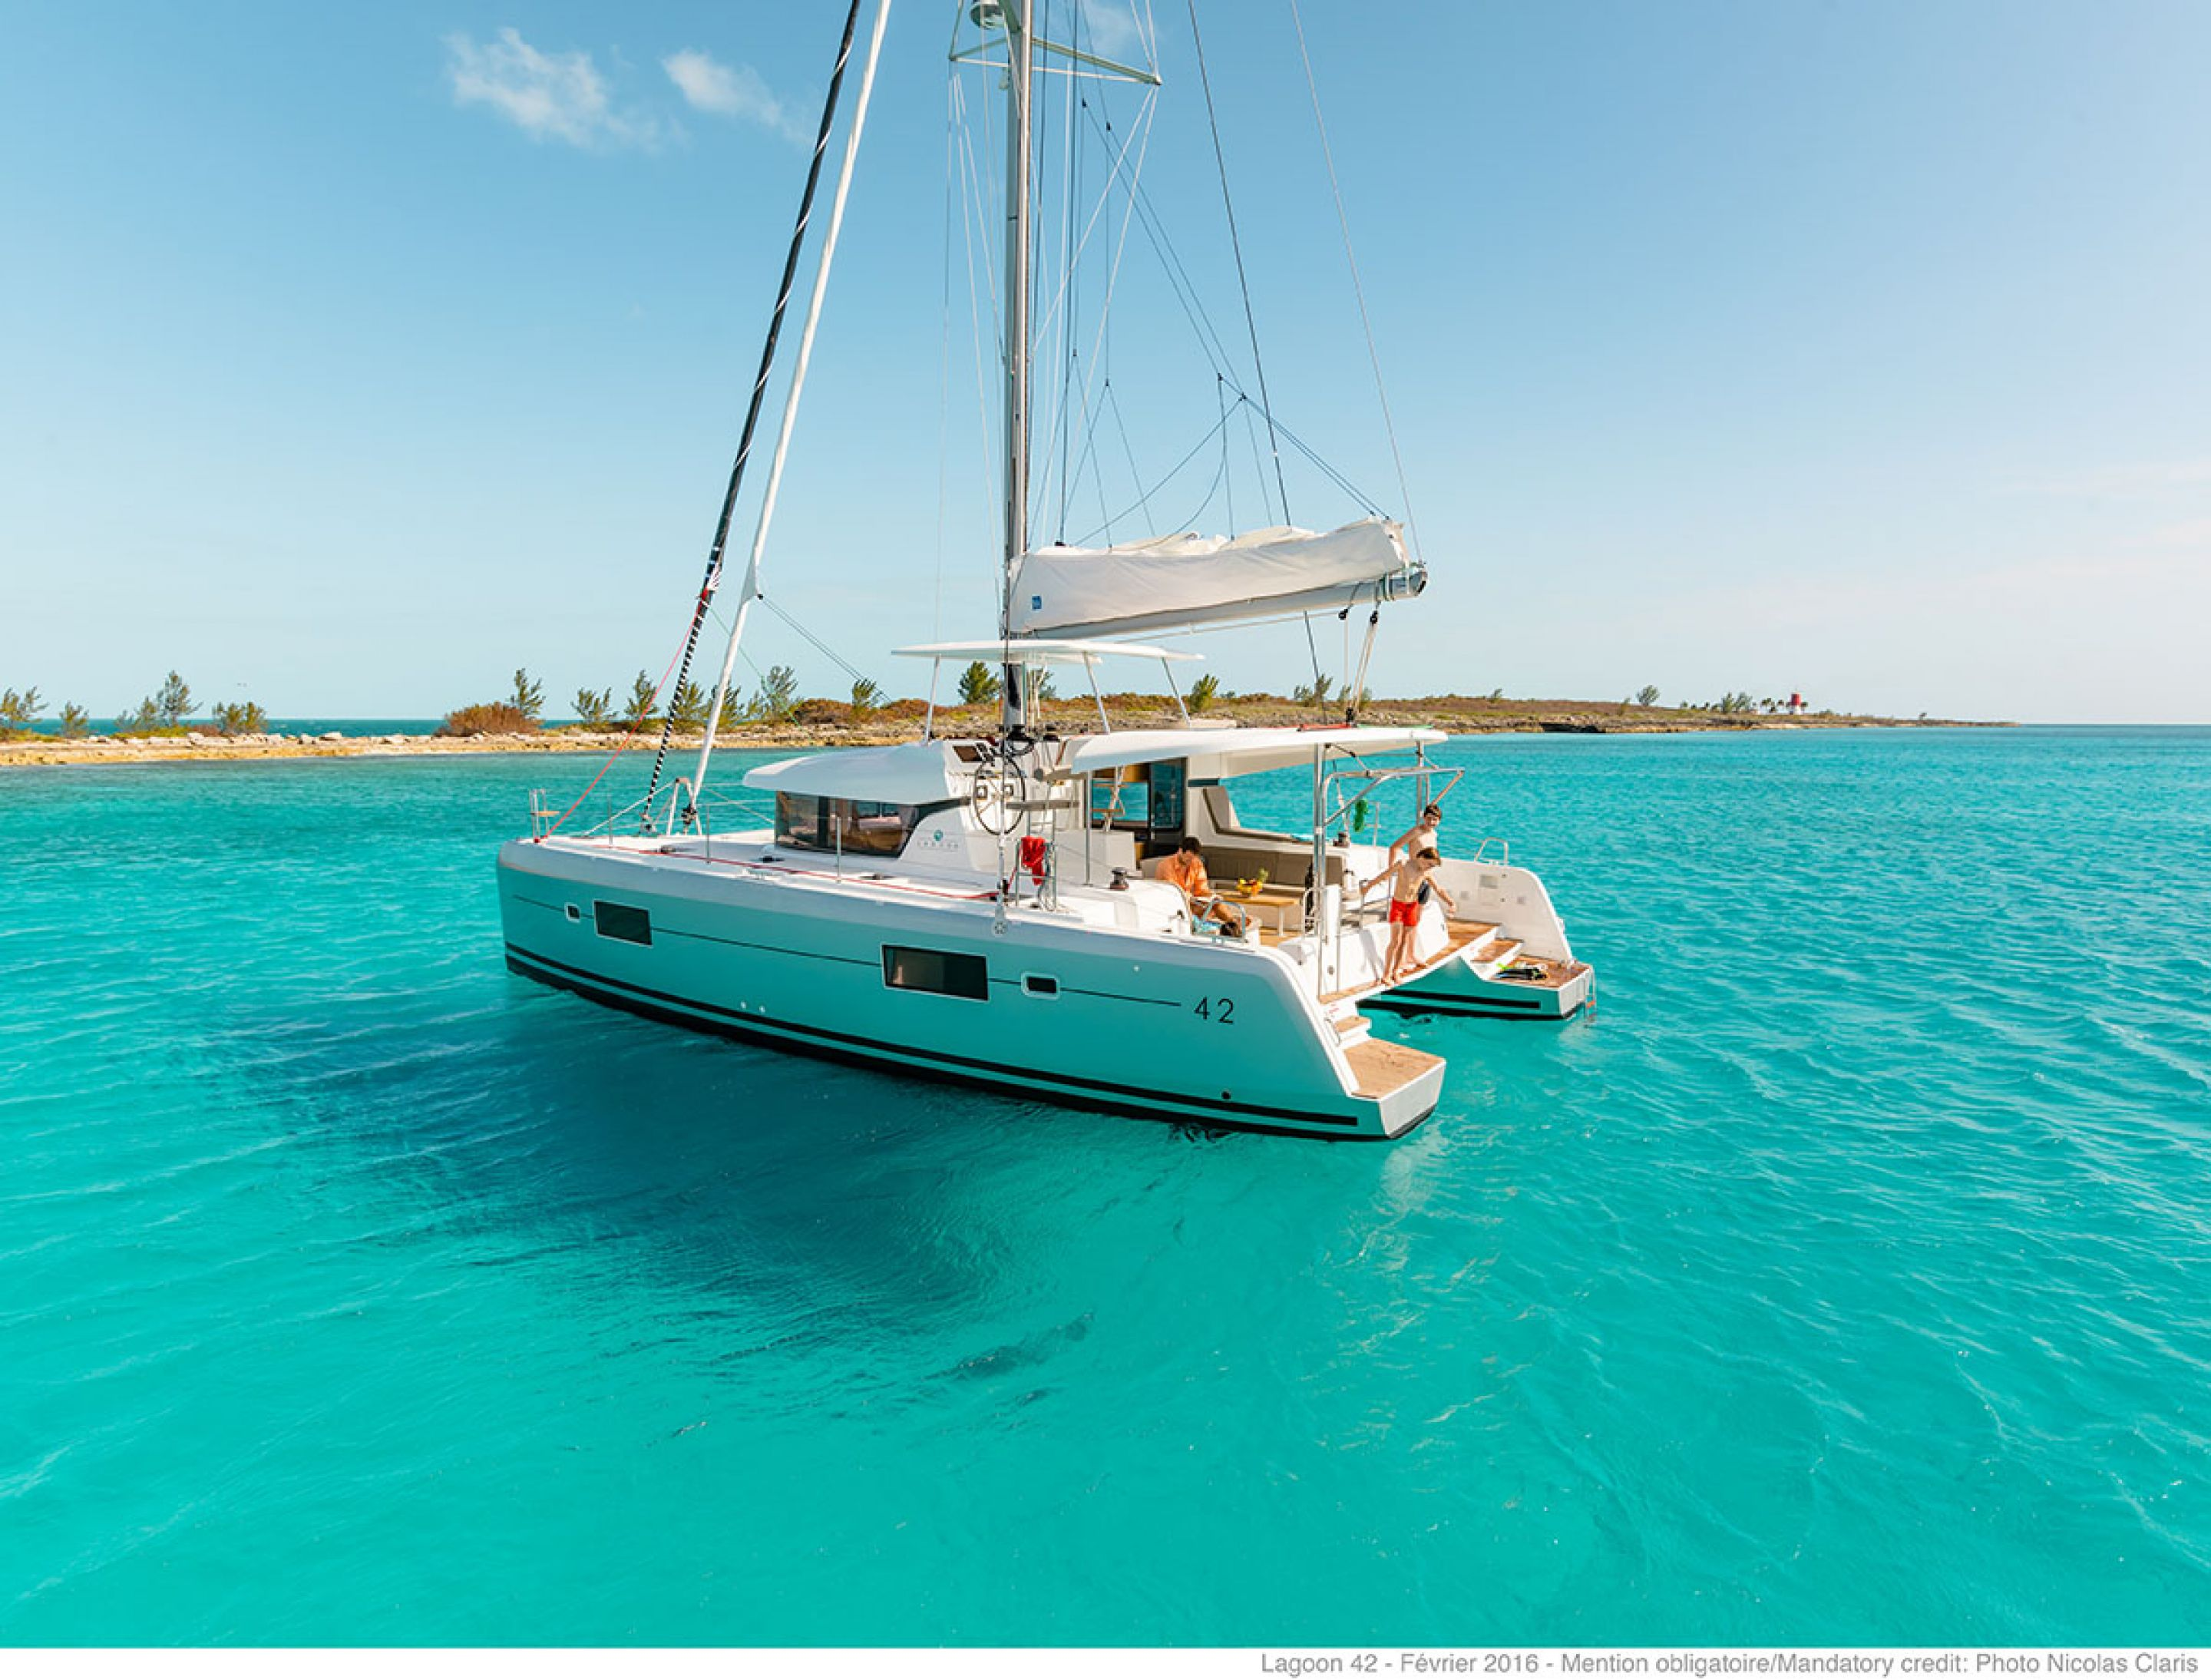 Lagoon 42 (6Cab) - Catamaran for Charter in Greece